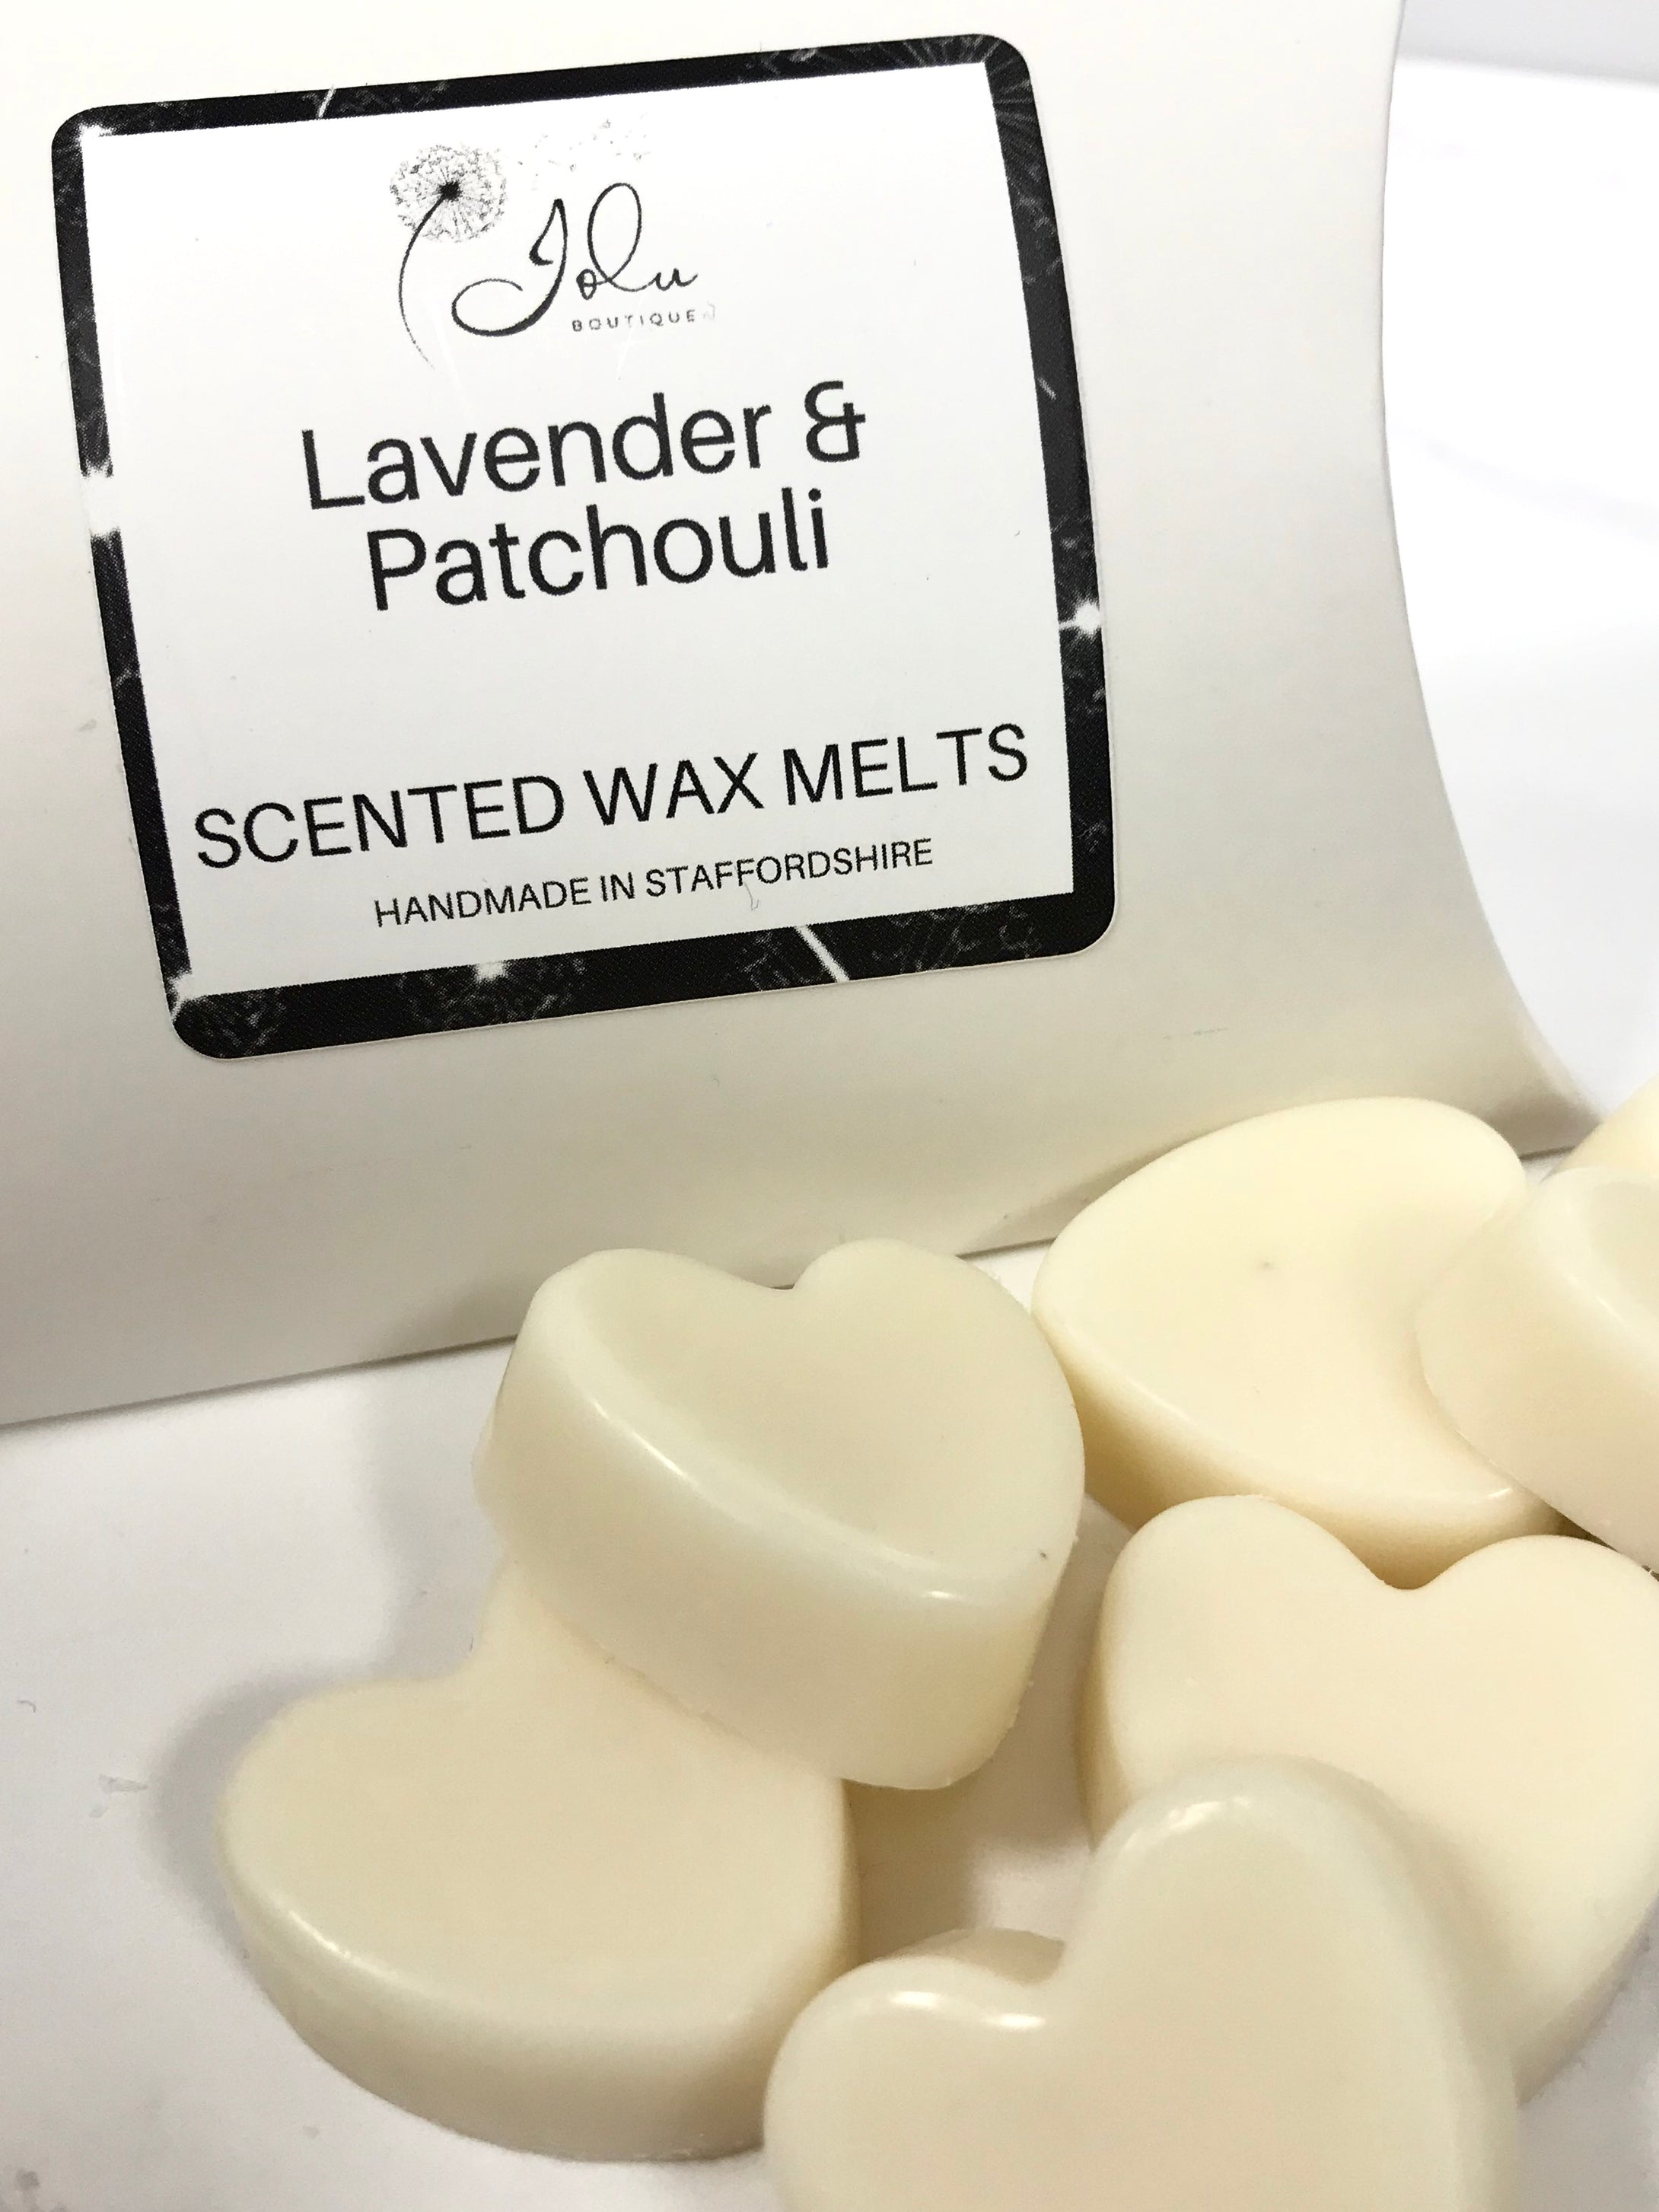 Jolu Boutique Lavender & Patchouli Soy Wax Melts - Pack 6 Hearts